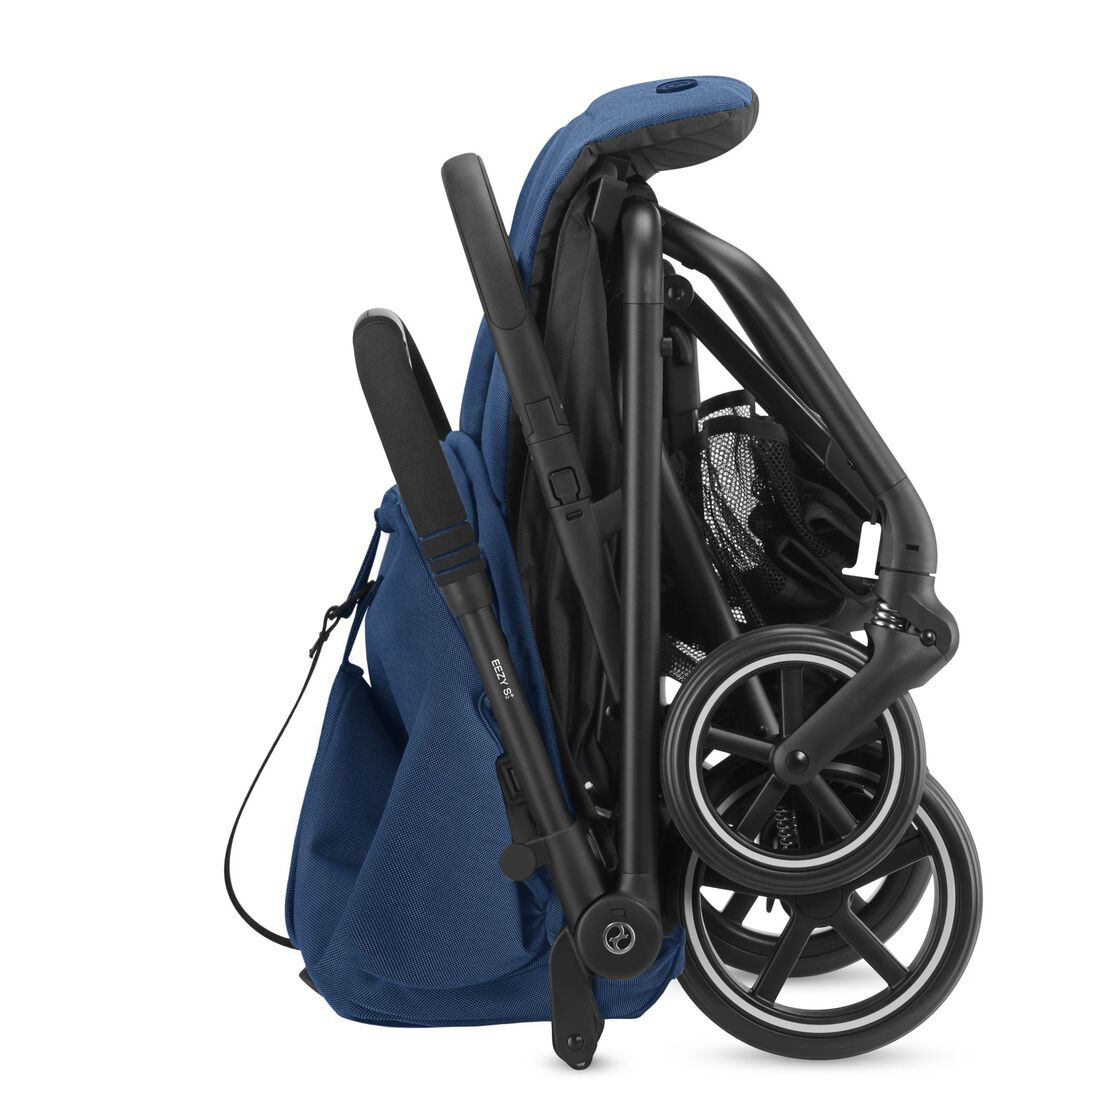 CYBEX Eezy S+2 - Navy Blue in Navy Blue large image number 5